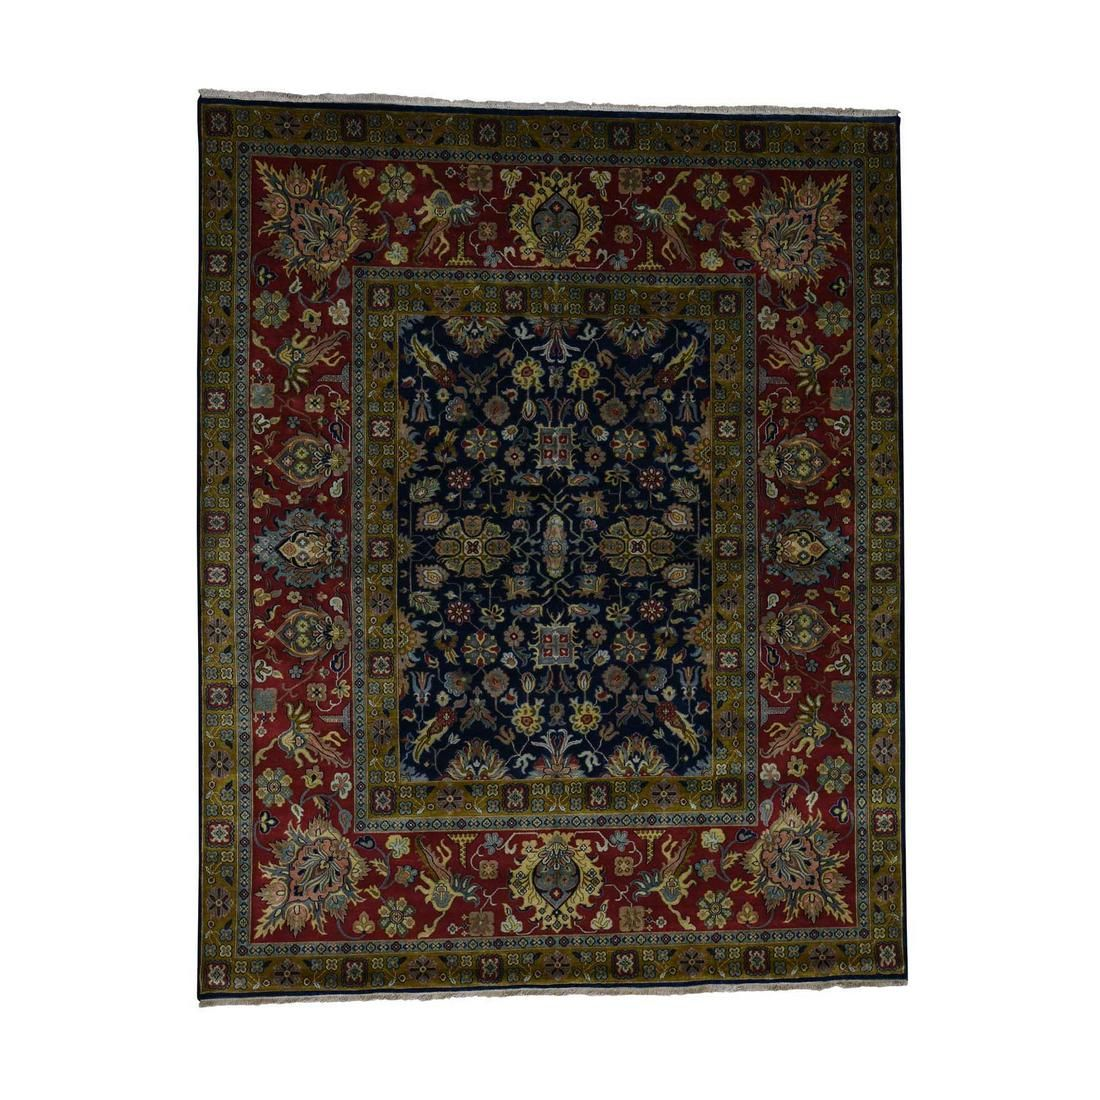 300KPSI New Zealand Wool Hand-Knotted Oriental Rug